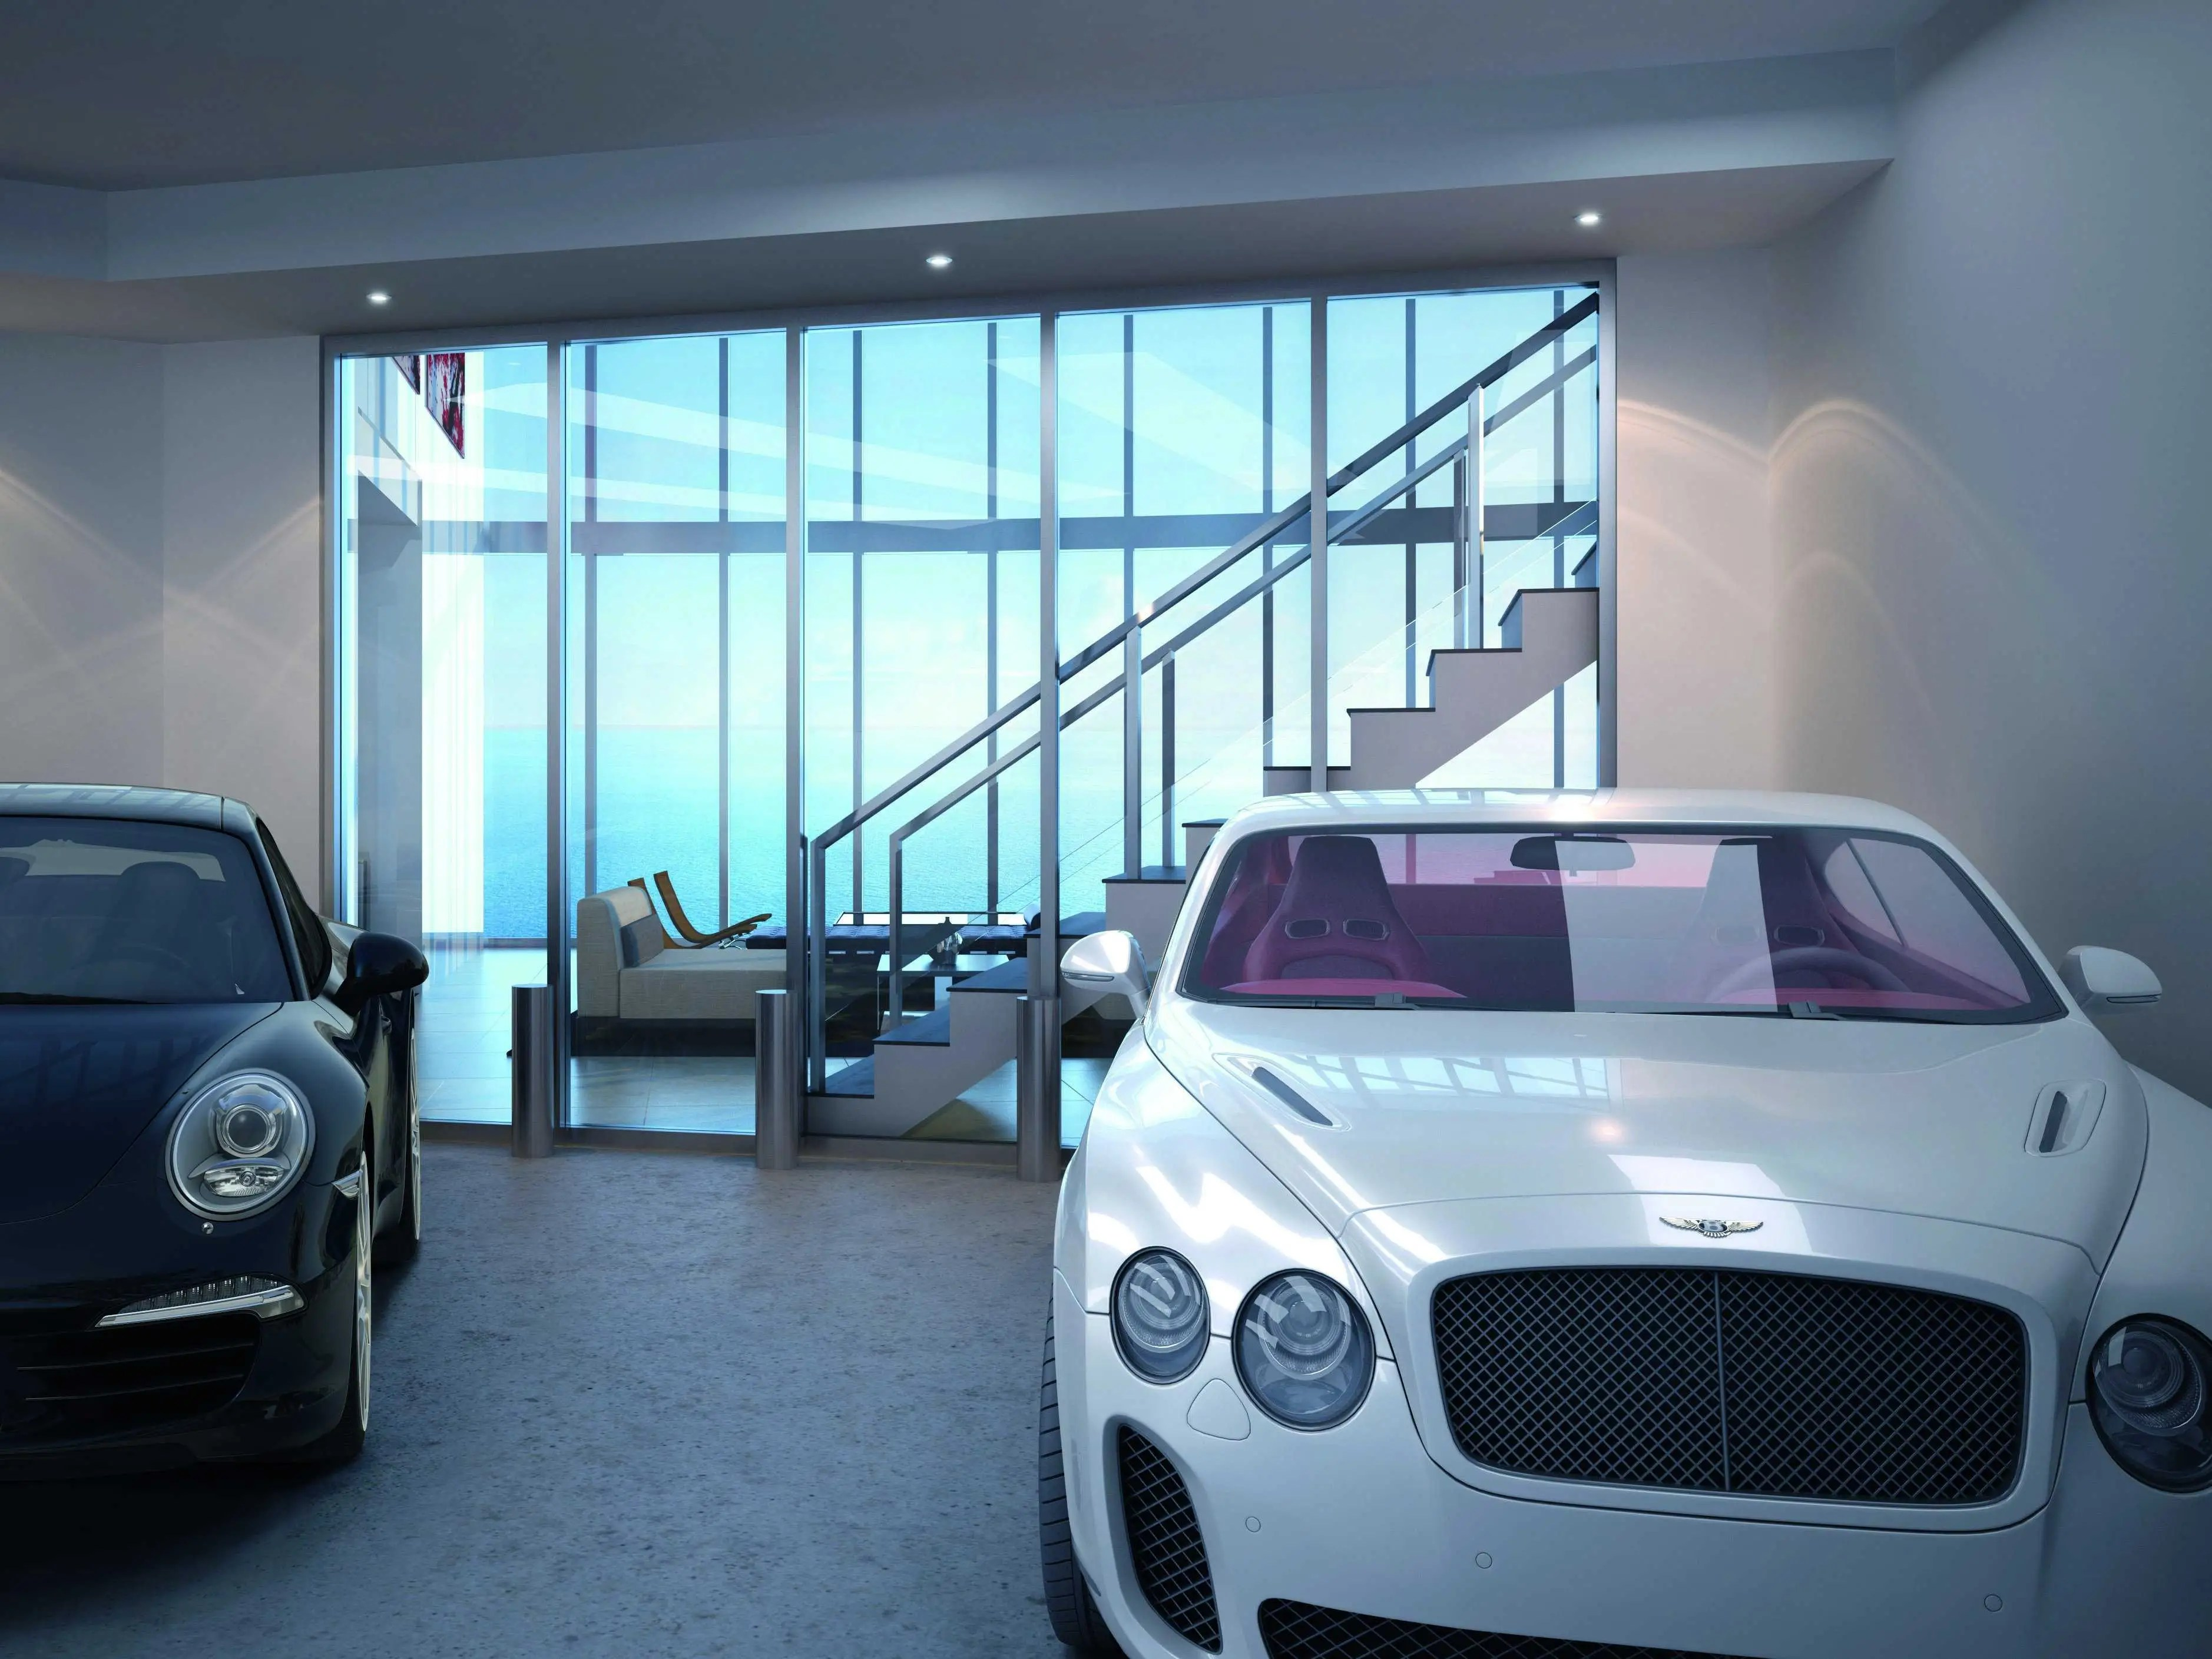 """Cheaper units have two-car garages, while higher-end ones have four. All residents can make use of a """"Car Concierge,"""" who will assist with washing, tire rotations, and regular maintenance."""